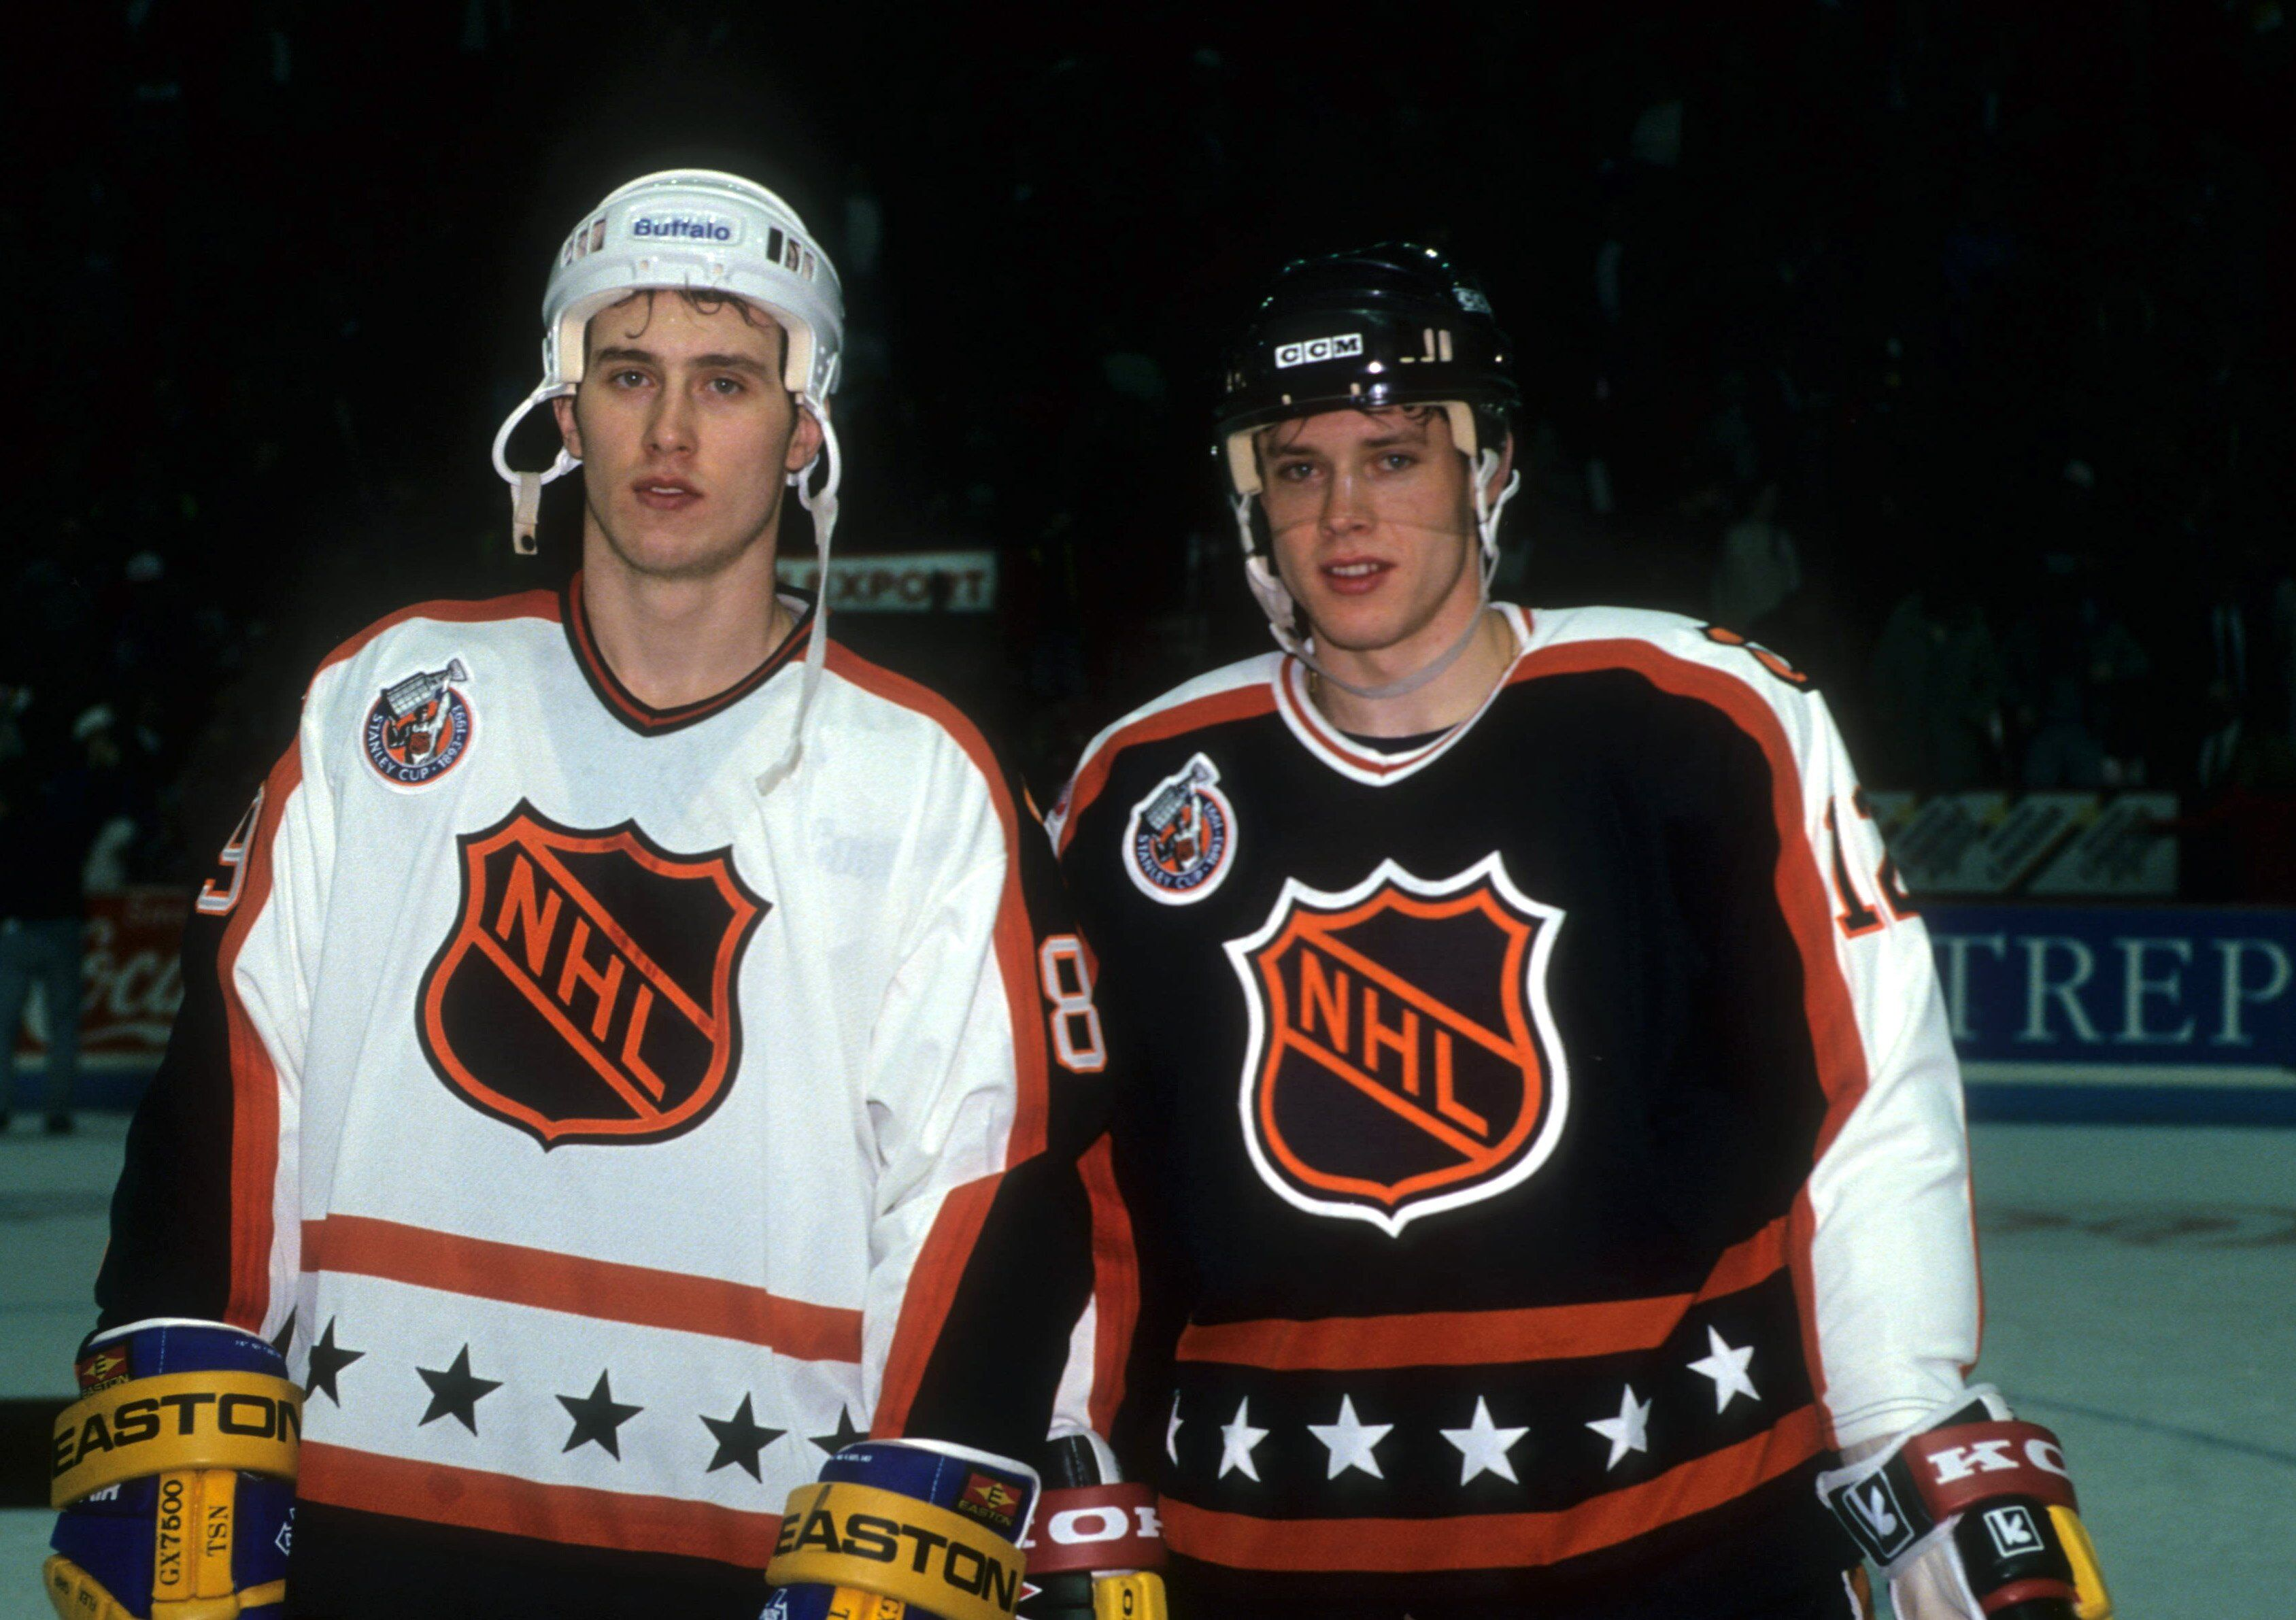 463090148-1993-44th-nhl-all-star-game-campbell-conference-v-wales-conference.jpg